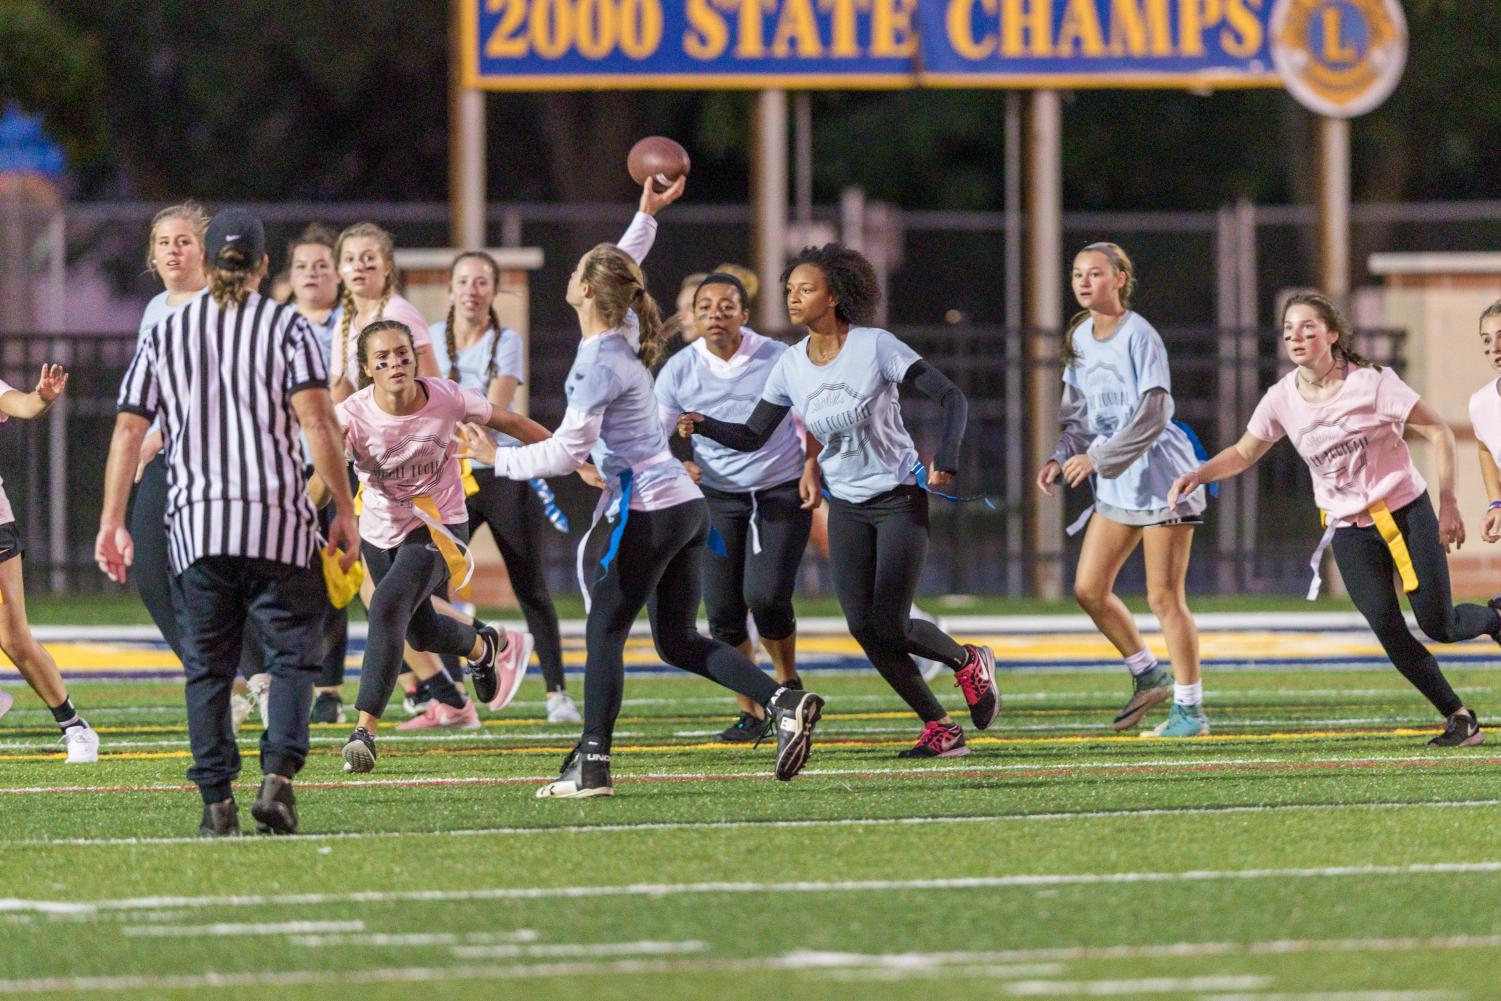 Grand Ledge Seniors face off against the Sophomores in the new sexism free Female Football League. In the 2018 season, the sophomores won the tournament.